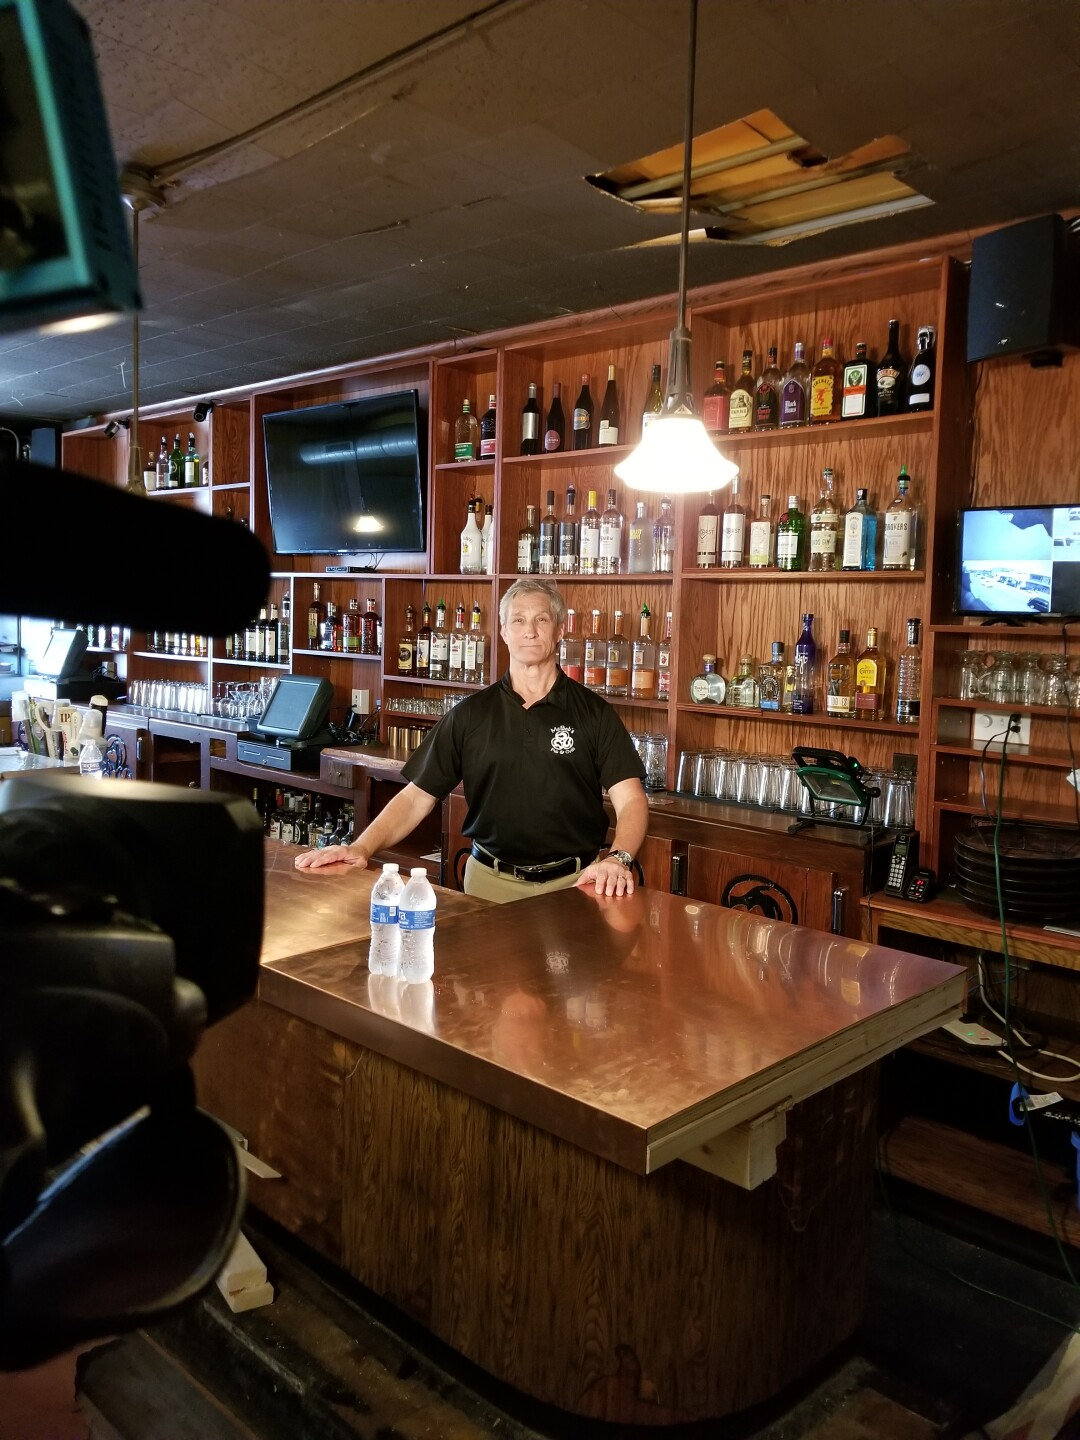 McBob's owner Steve Schmich said it's crucial he can offer dine-in services soon because he has lost a lot of business due to the coronavirus.